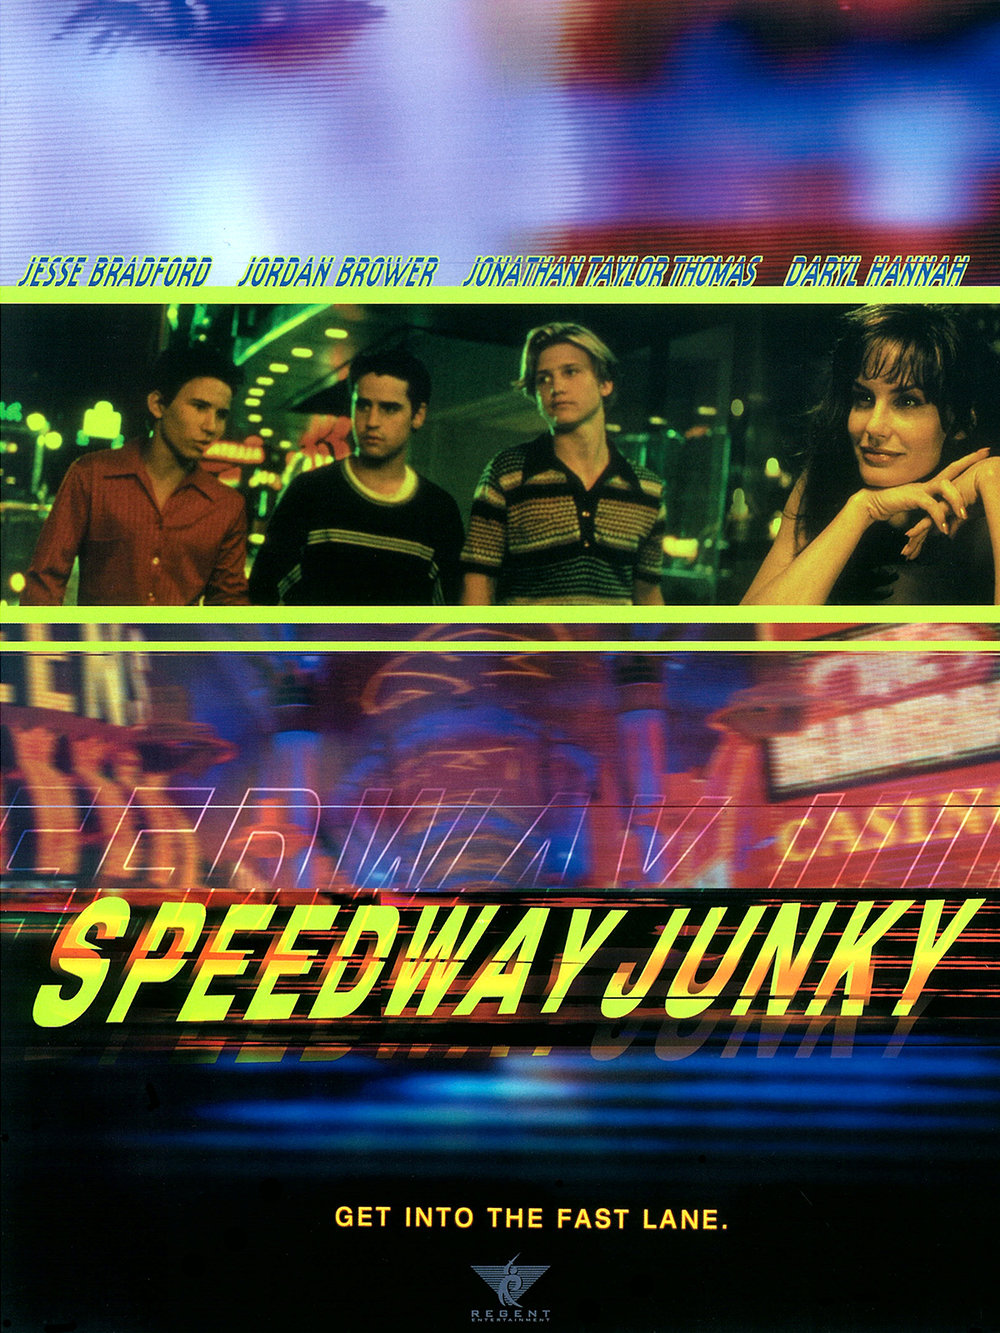 Here-SpeedwayJunky-Full-Image-en-US.jpg